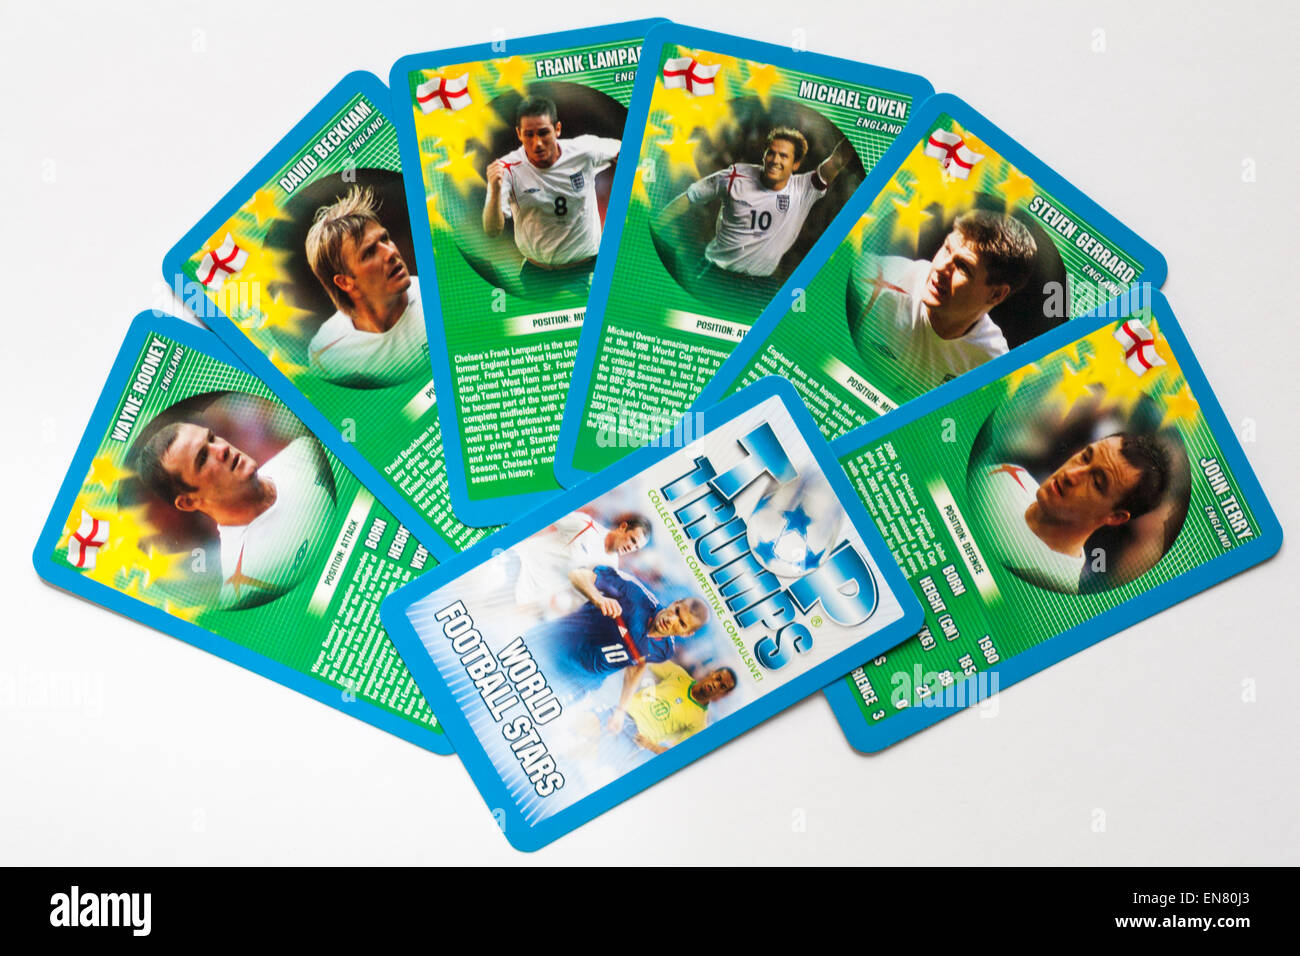 Top Trumps cards World Football Stars showing England players isolated on white background - Stock Image